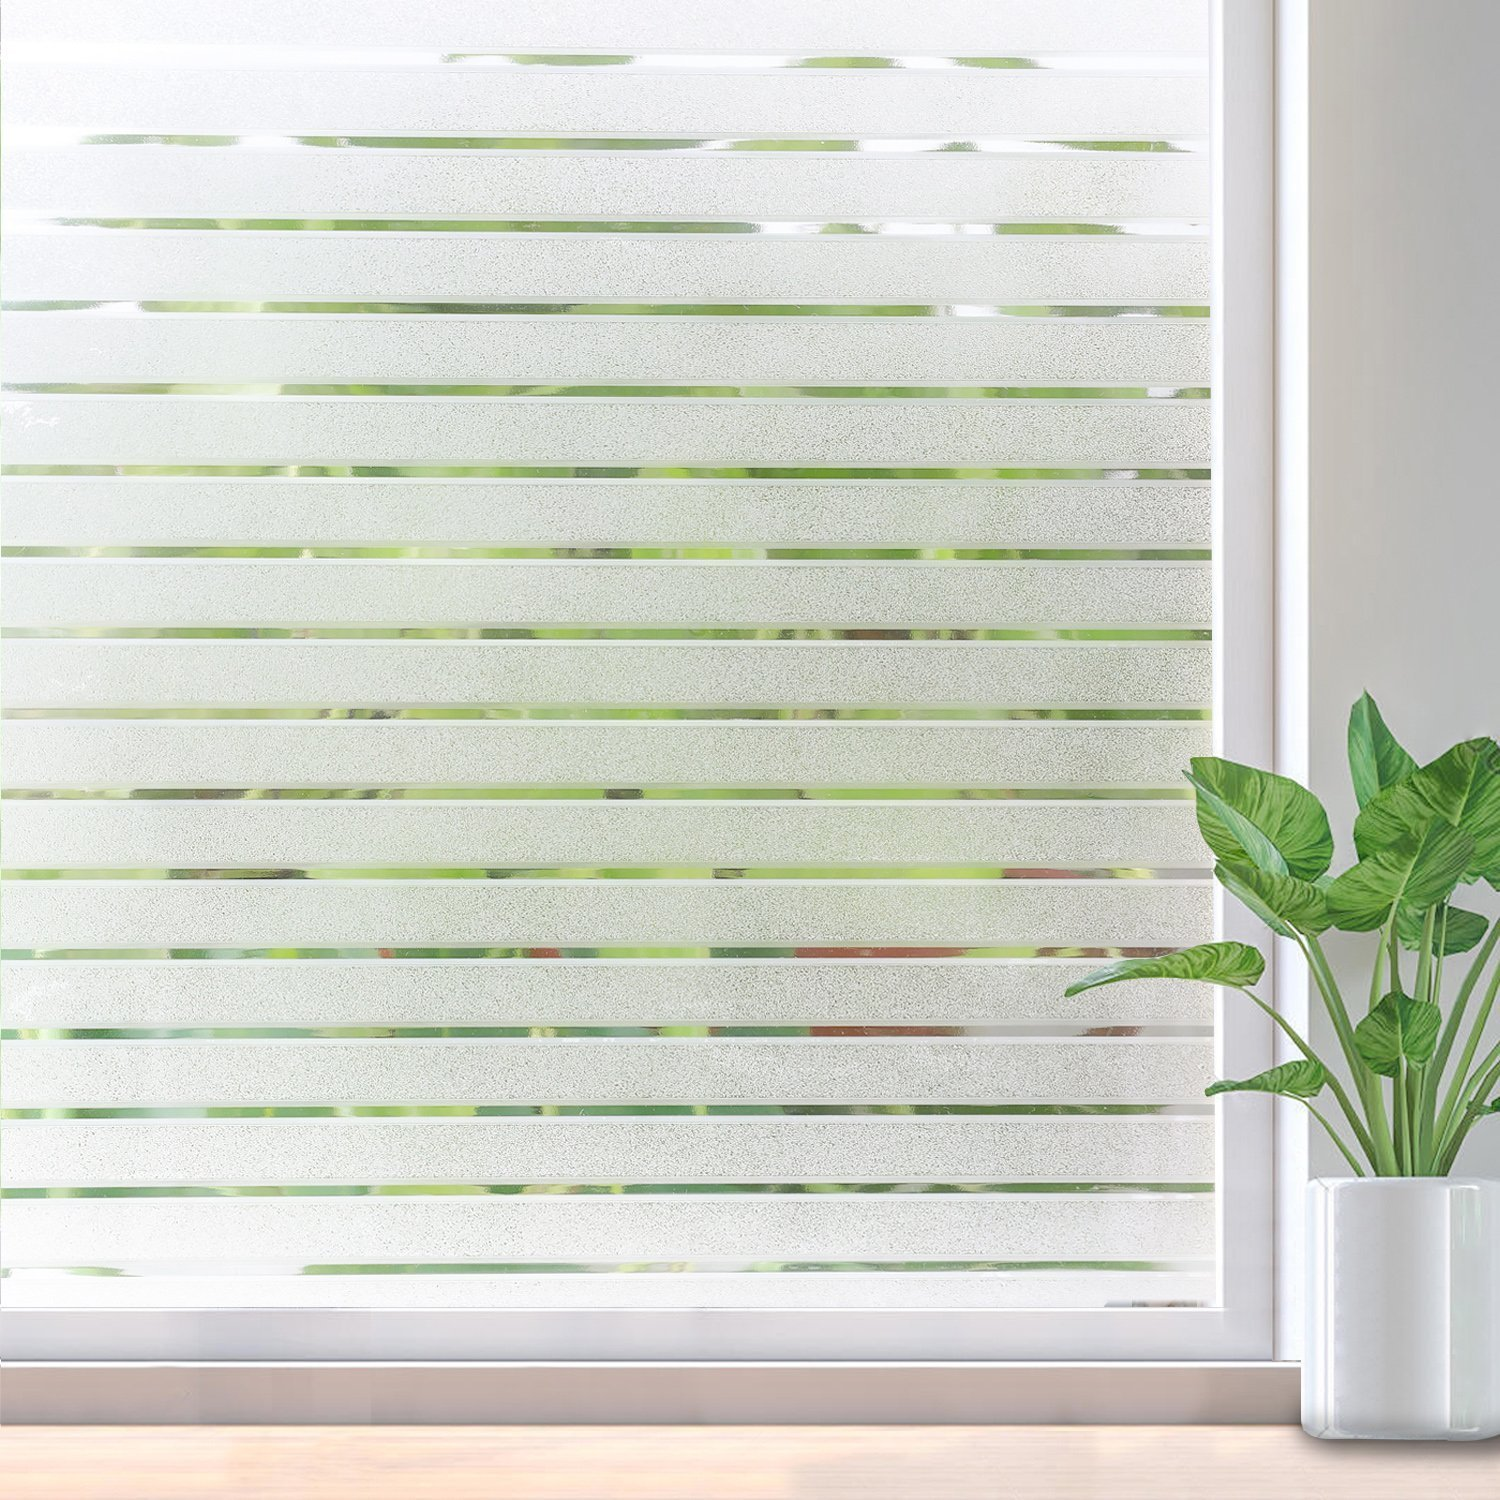 RABBITGOO Frosted Window Clings Privacy Etched Glass Window Film Window Frosting Film Non-Adhesive Window Stickers, 44.5x150cm (Frosted Stripe,17.5'' x 59'') by RABBITGOO (Image #2)